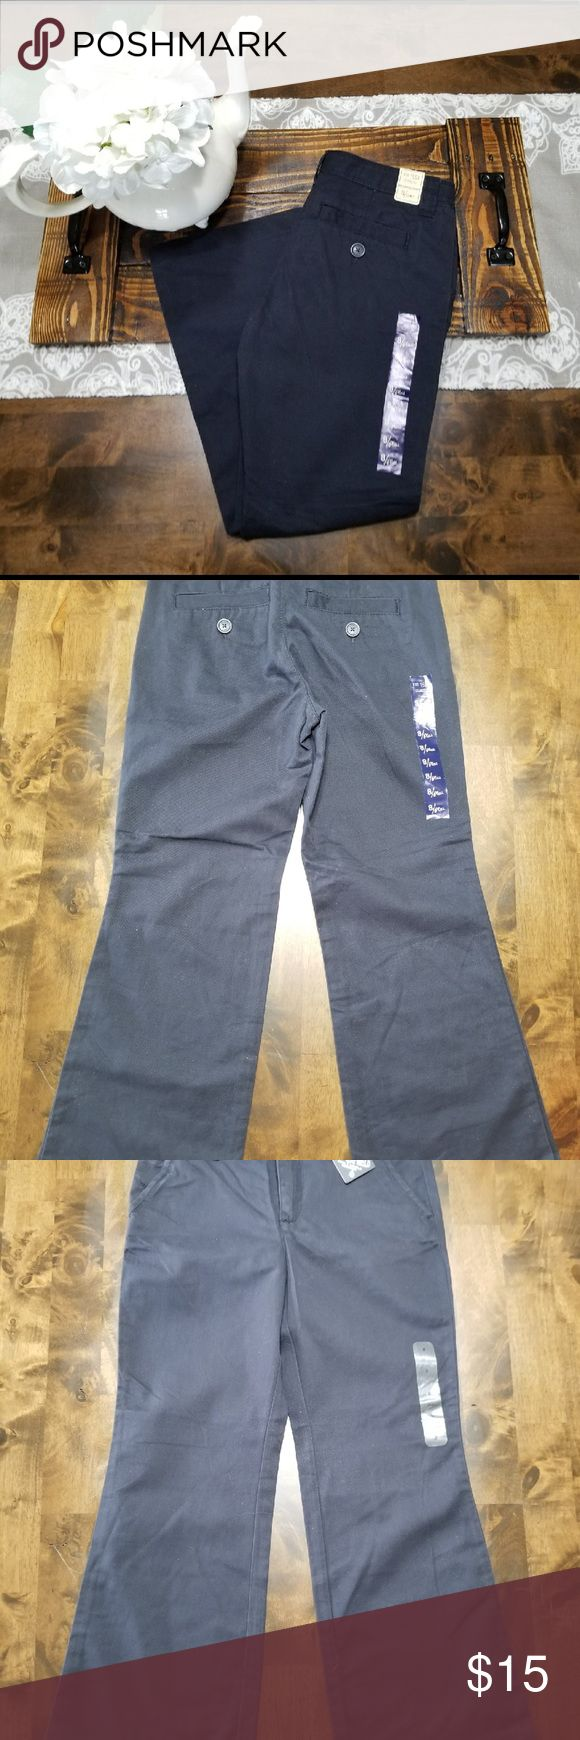 GapKids GapShield Navy Khaki Pants Sizing: adjustable waist, 8 plus                                            Cut: mid rise                                                                           Fit: relaxed through the hip and thigh                                  Leg opening: wide                                                                 Color: NAVY GAP Bottoms